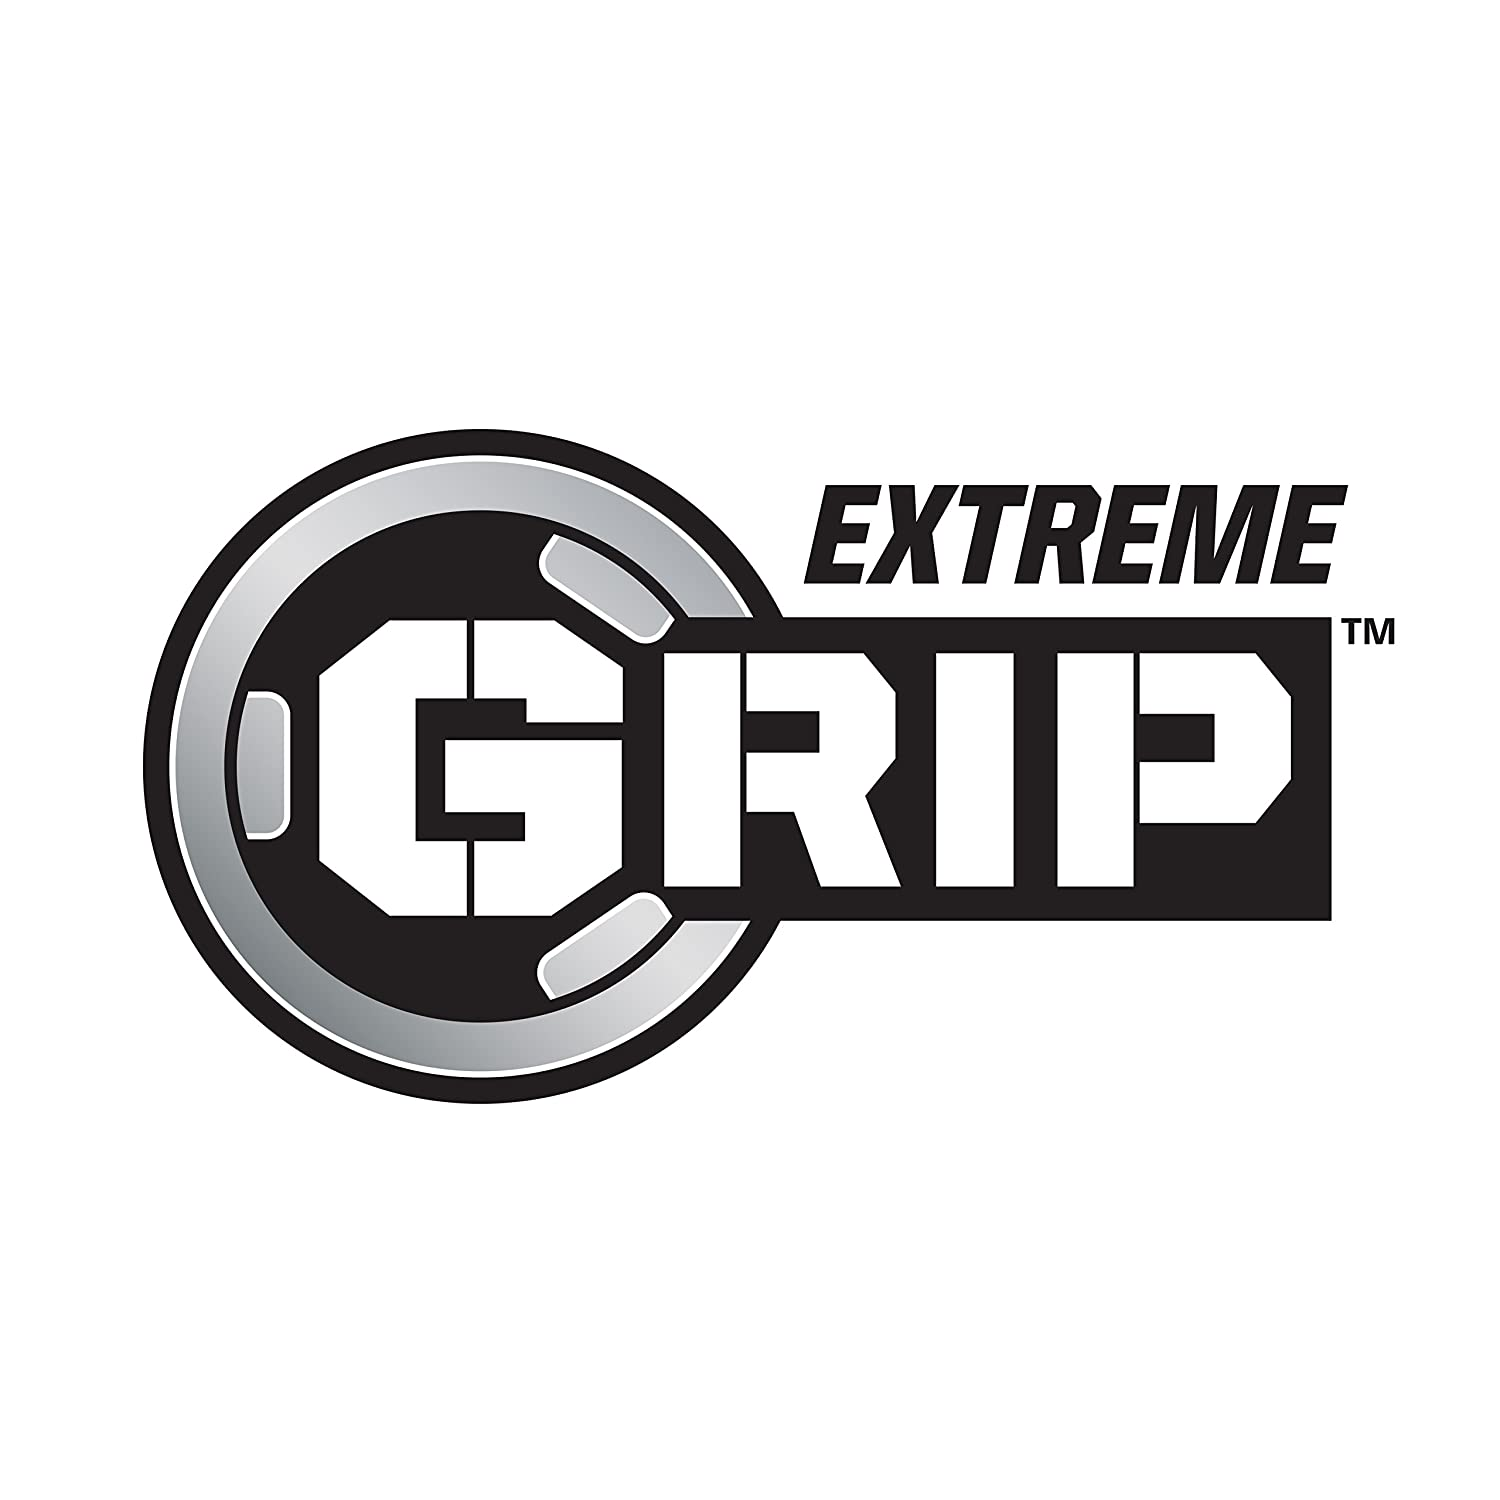 Craftsman Extreme Grip 10-inch Adjustable Wrench by Craftsman